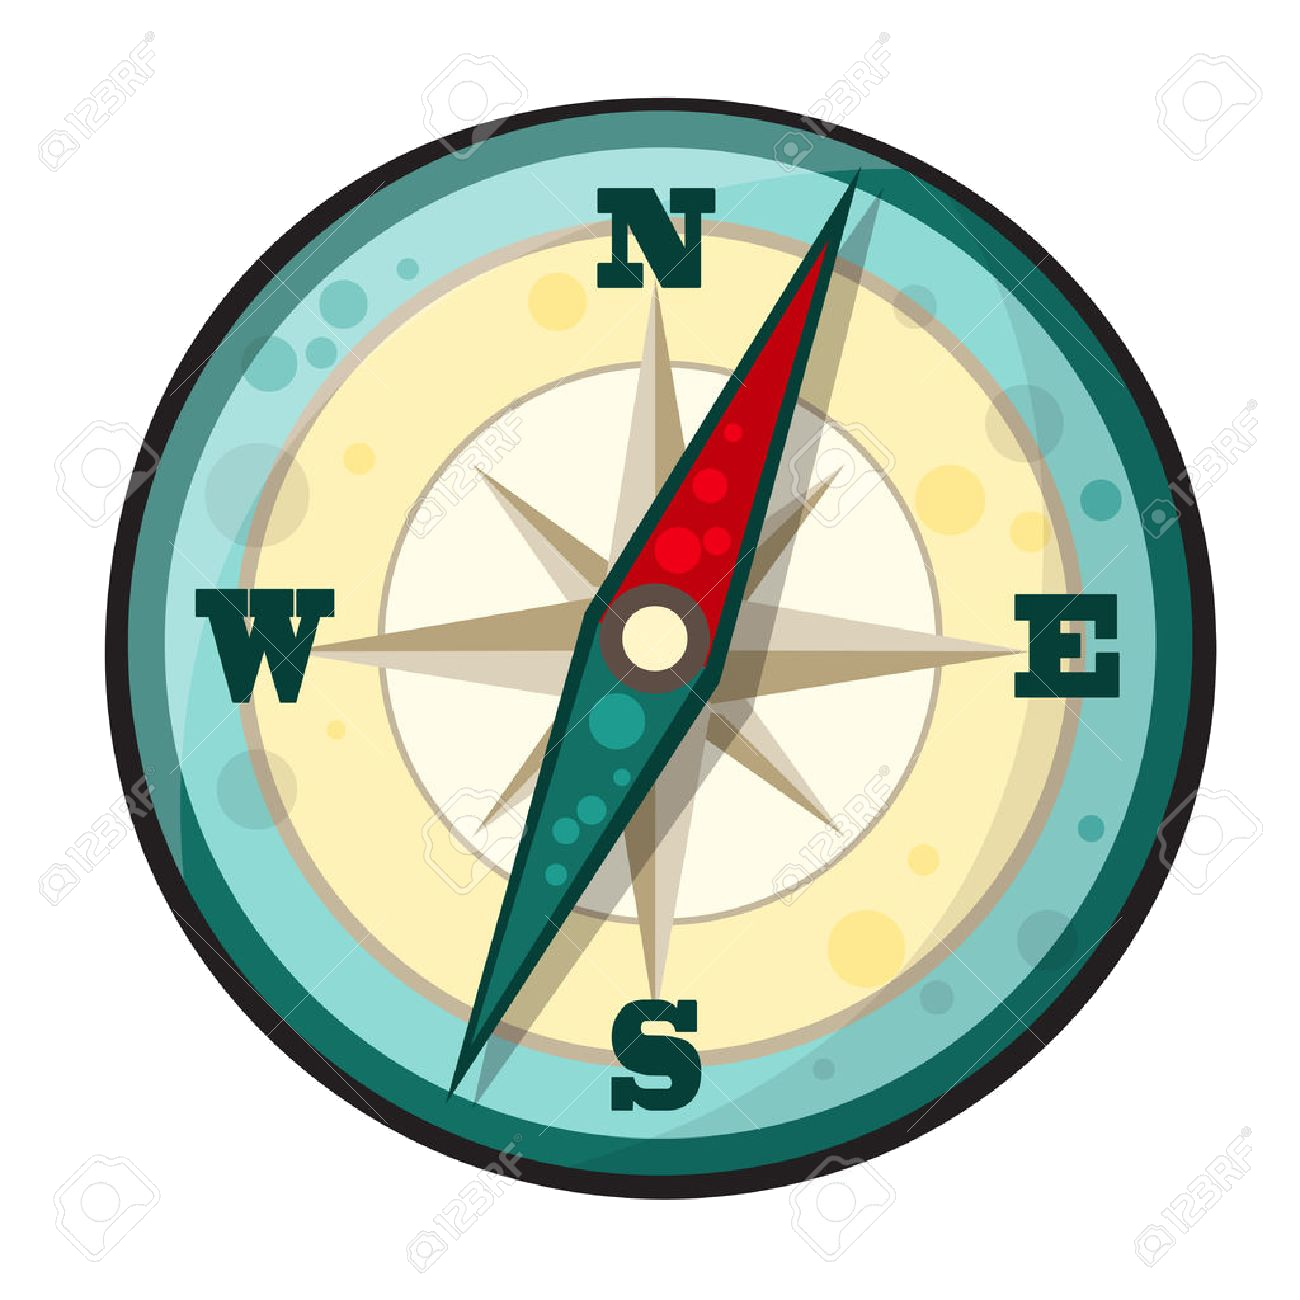 Compass Clipart Cartoon Graphics Illustrations Free Png.